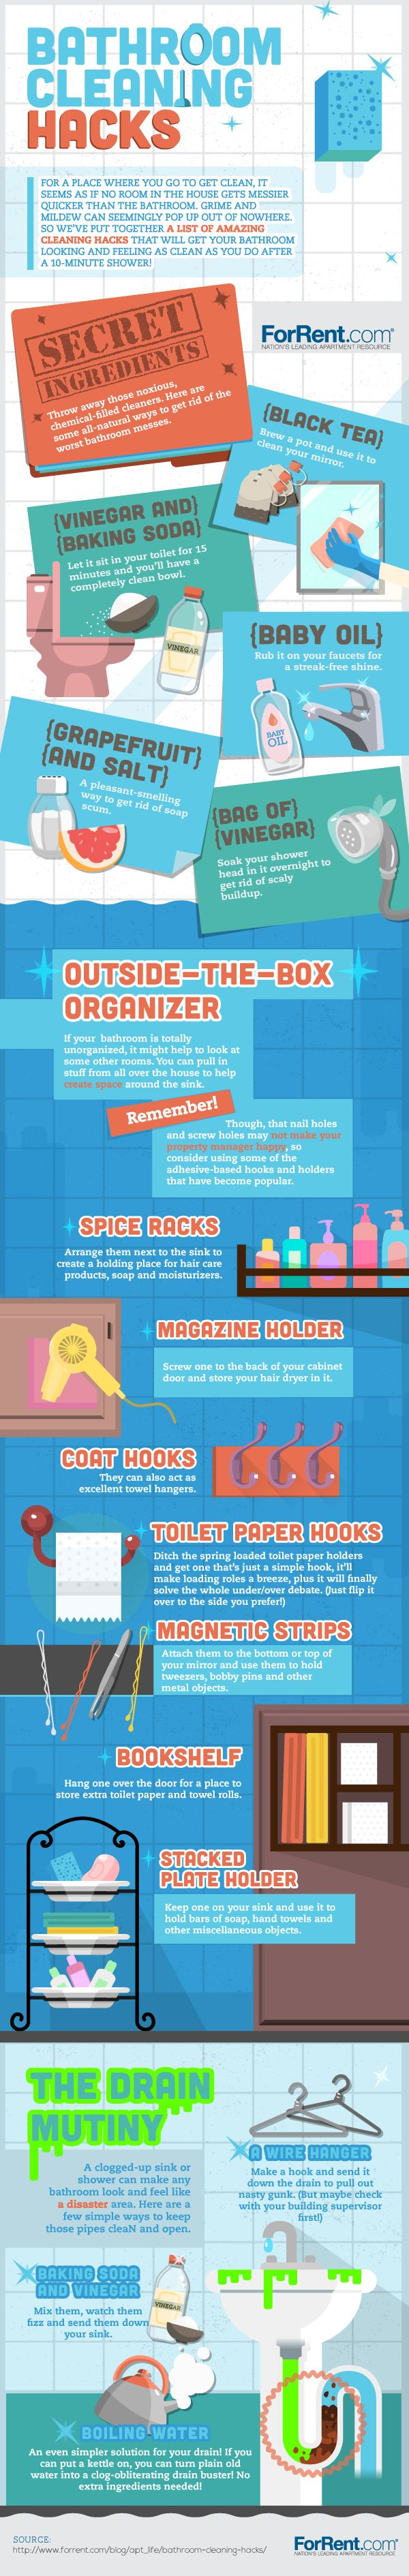 Effective+Bathroom+Cleaning+Hacks